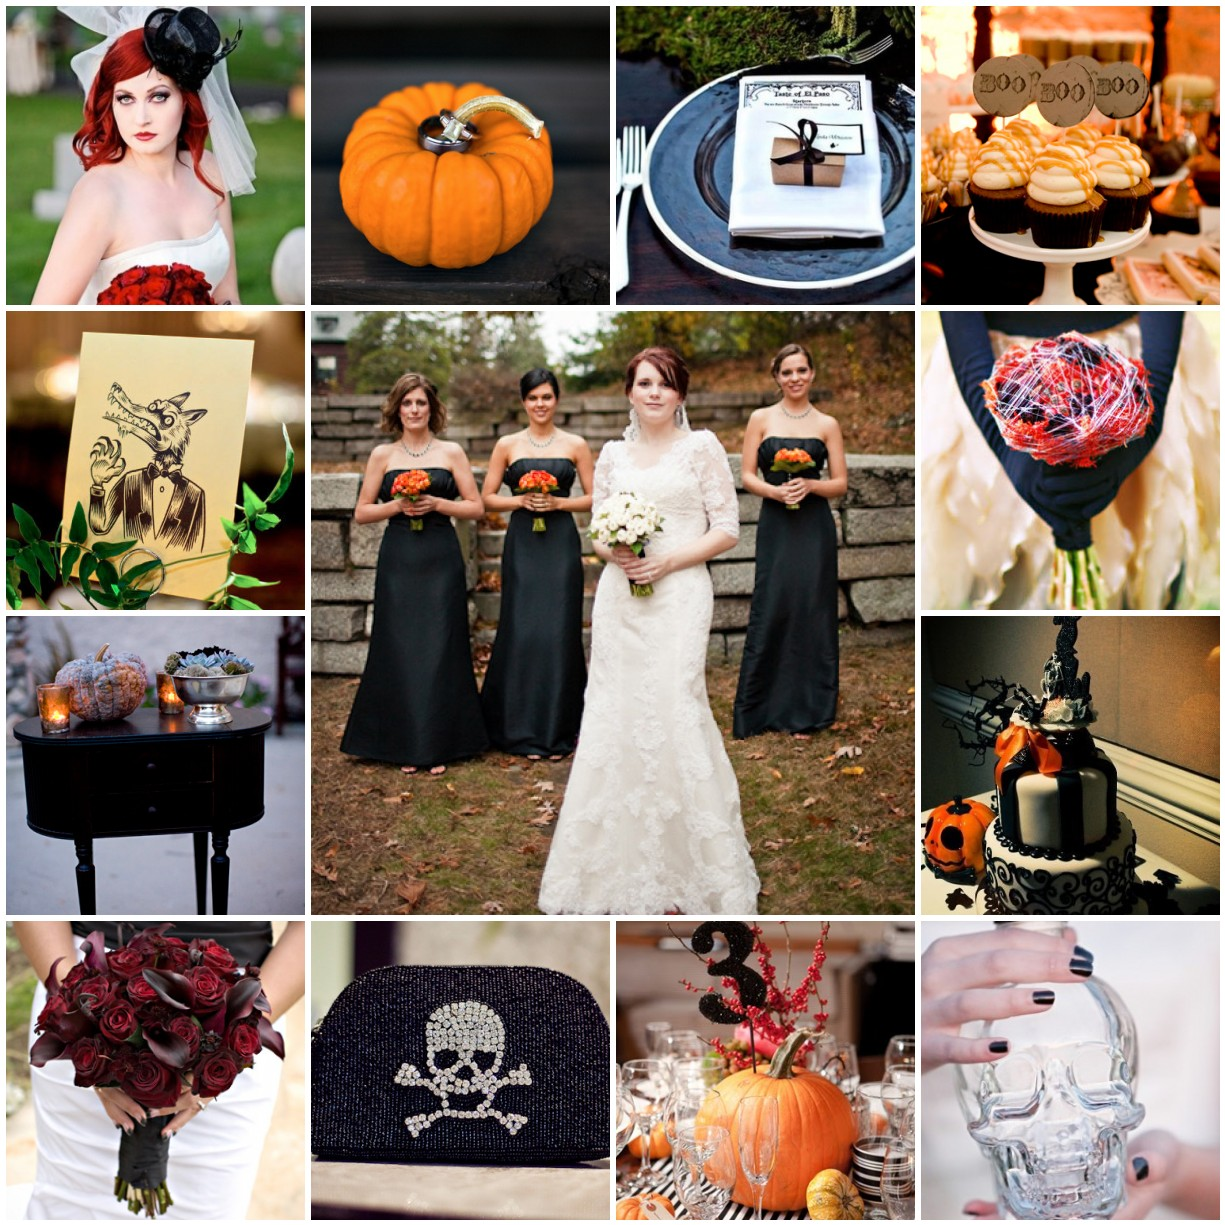 Halloween Weddings: The Blushing Bride